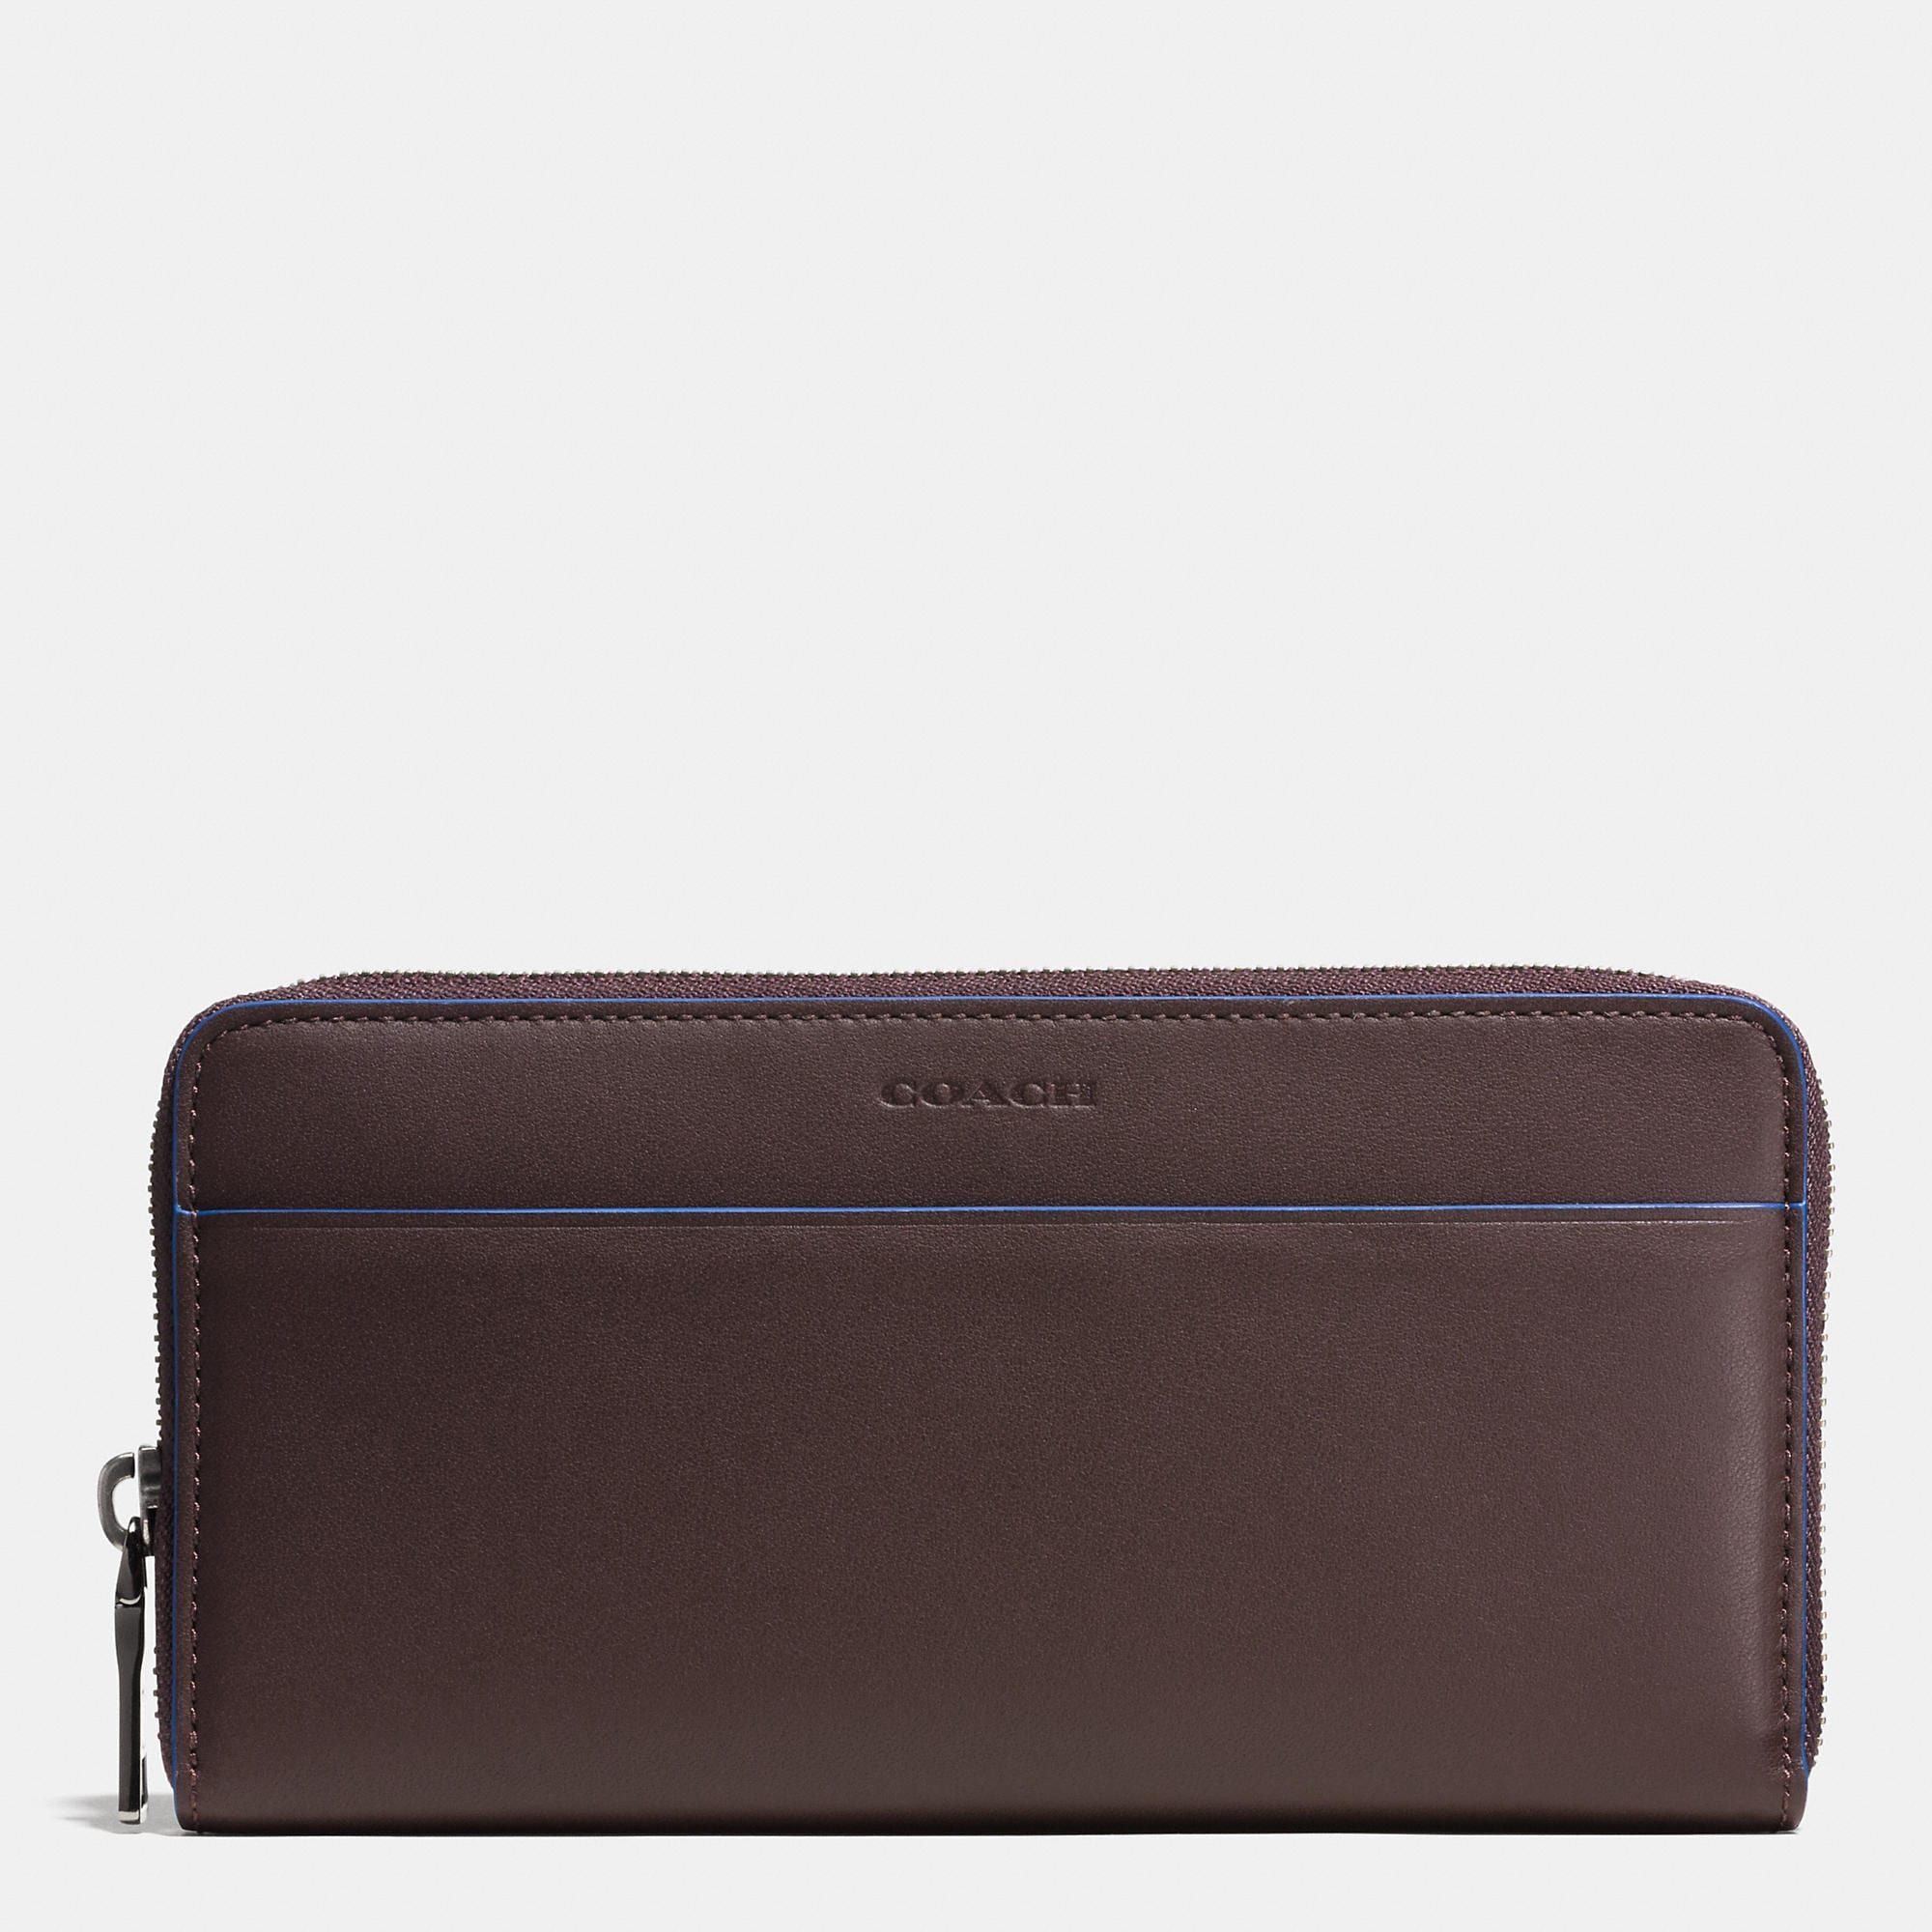 Coach 1941 Accordion Zip Wallet In Glovetanned Leather